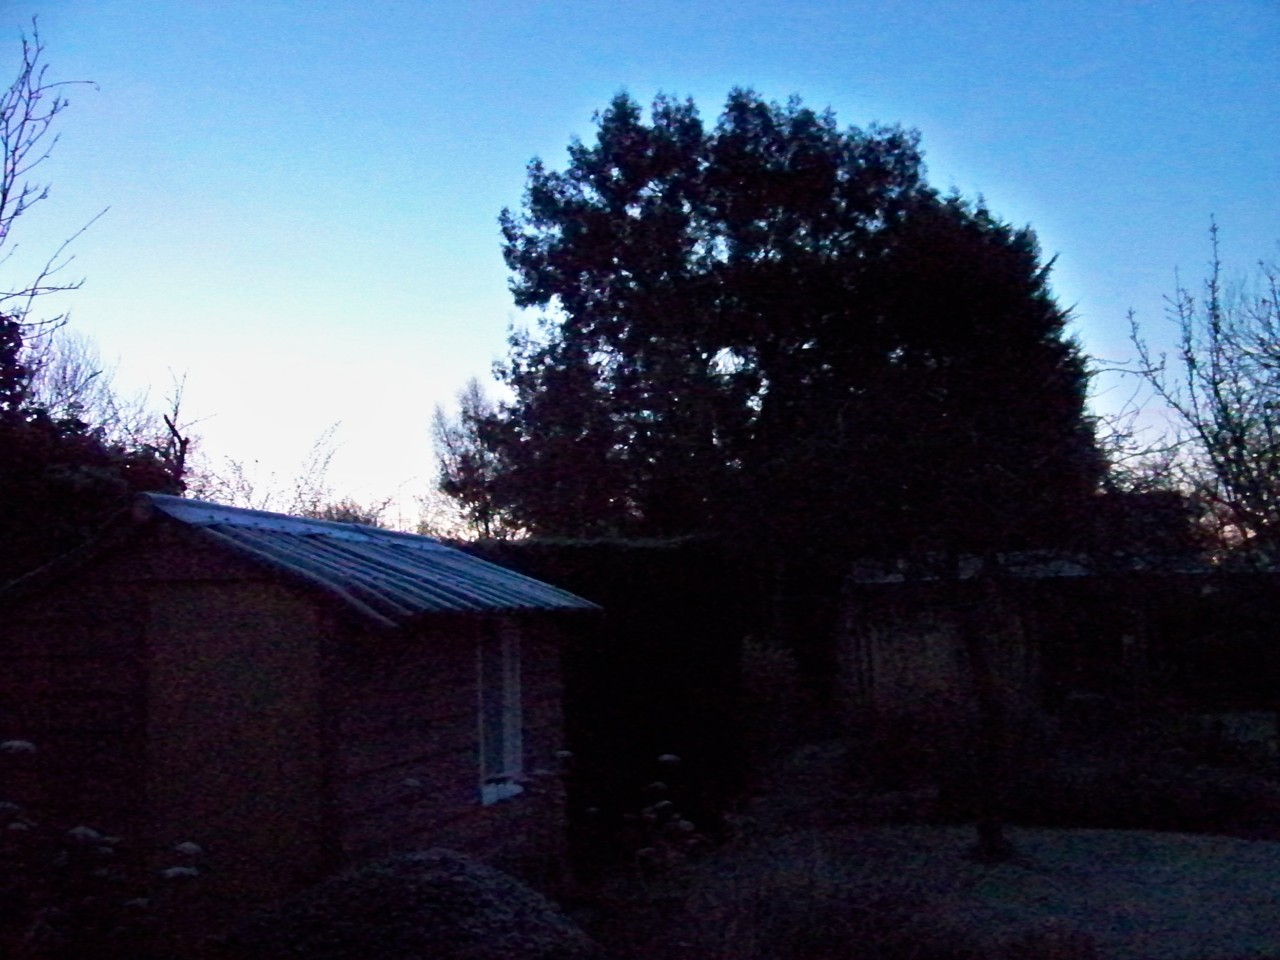 17th January 2012. The garden early this morning, clear sky and hard frost.